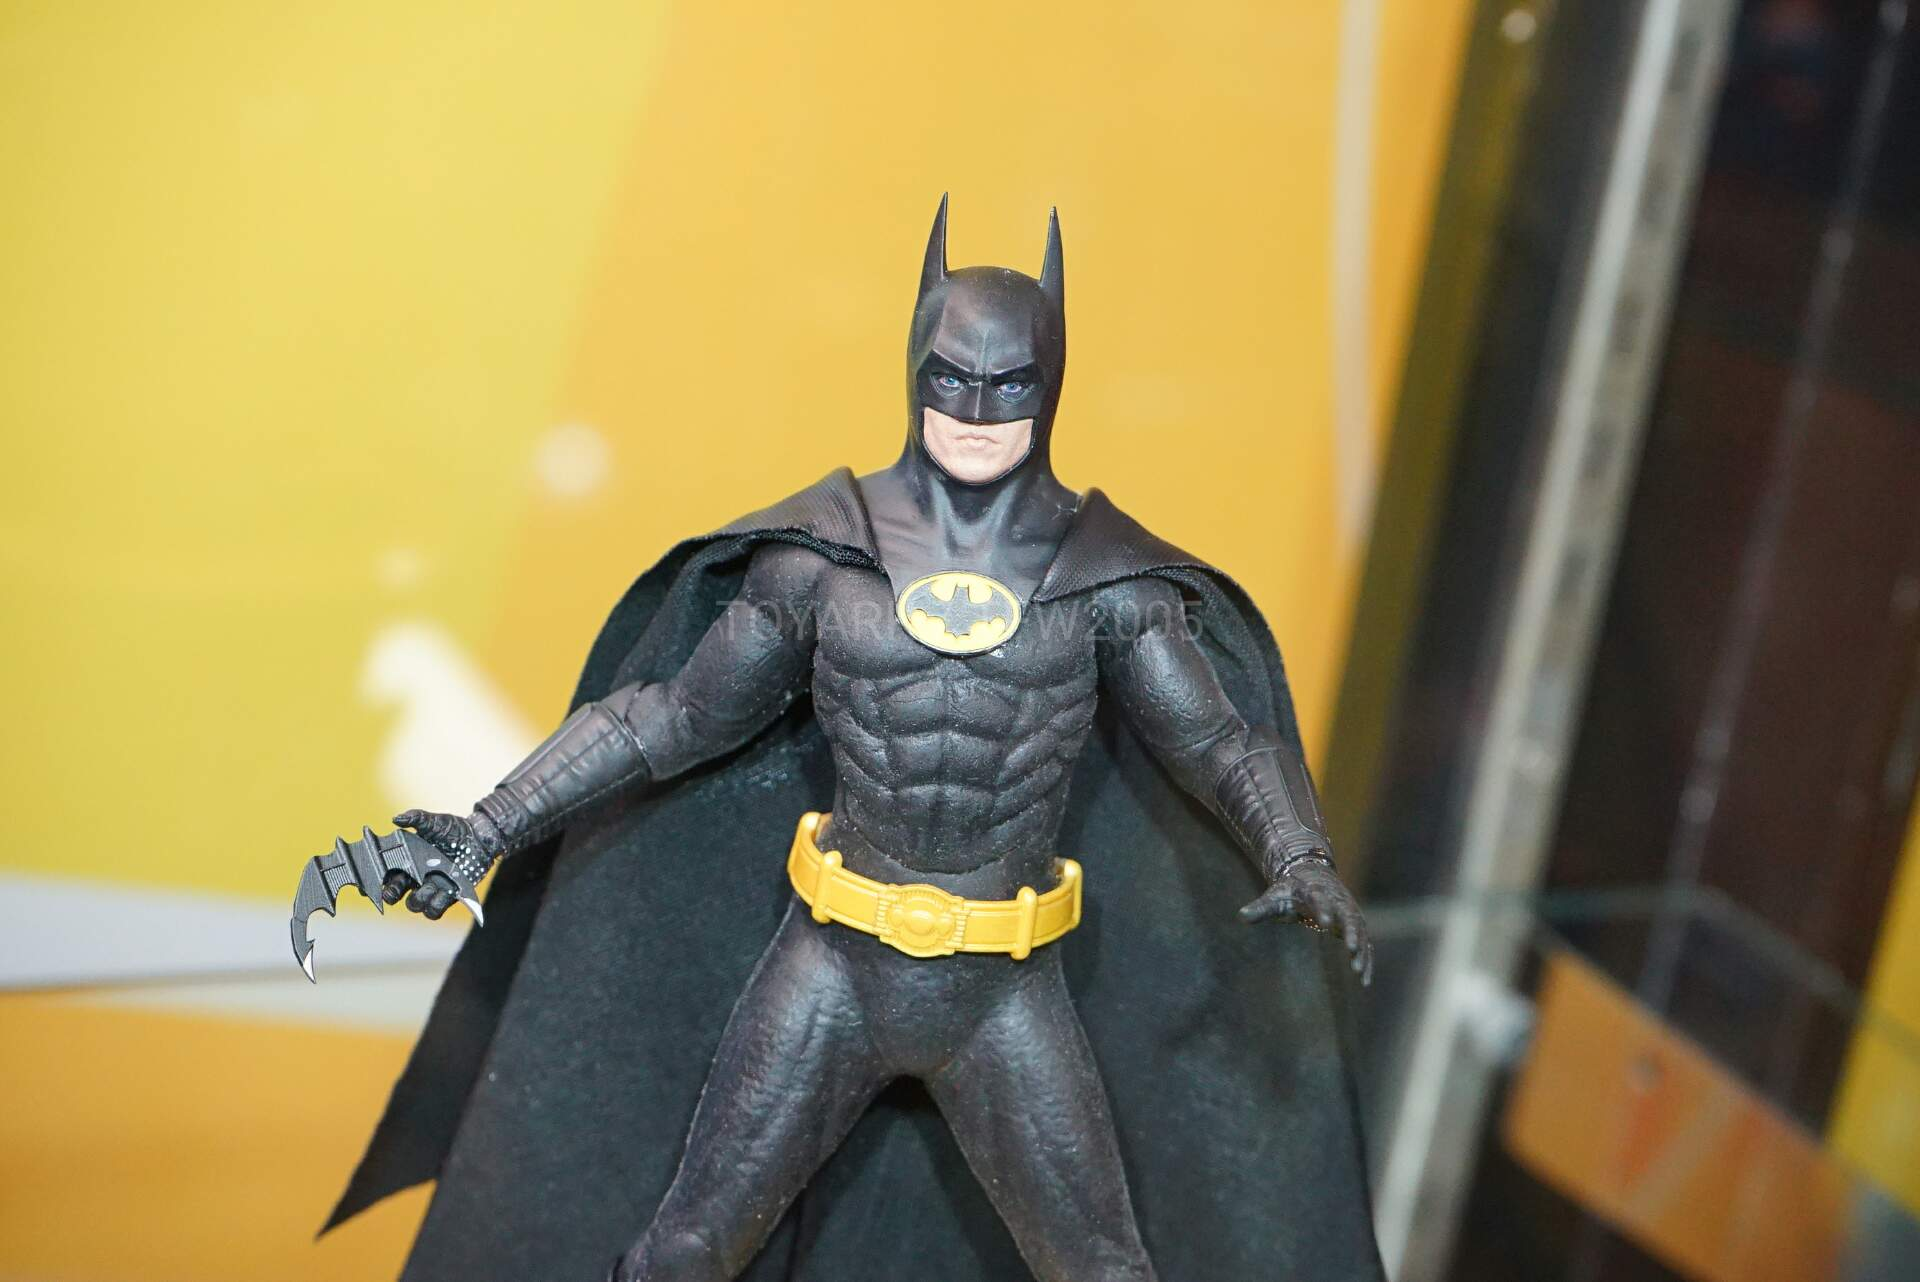 Toy-Fair-2020-Mezco-One12-013.jpg